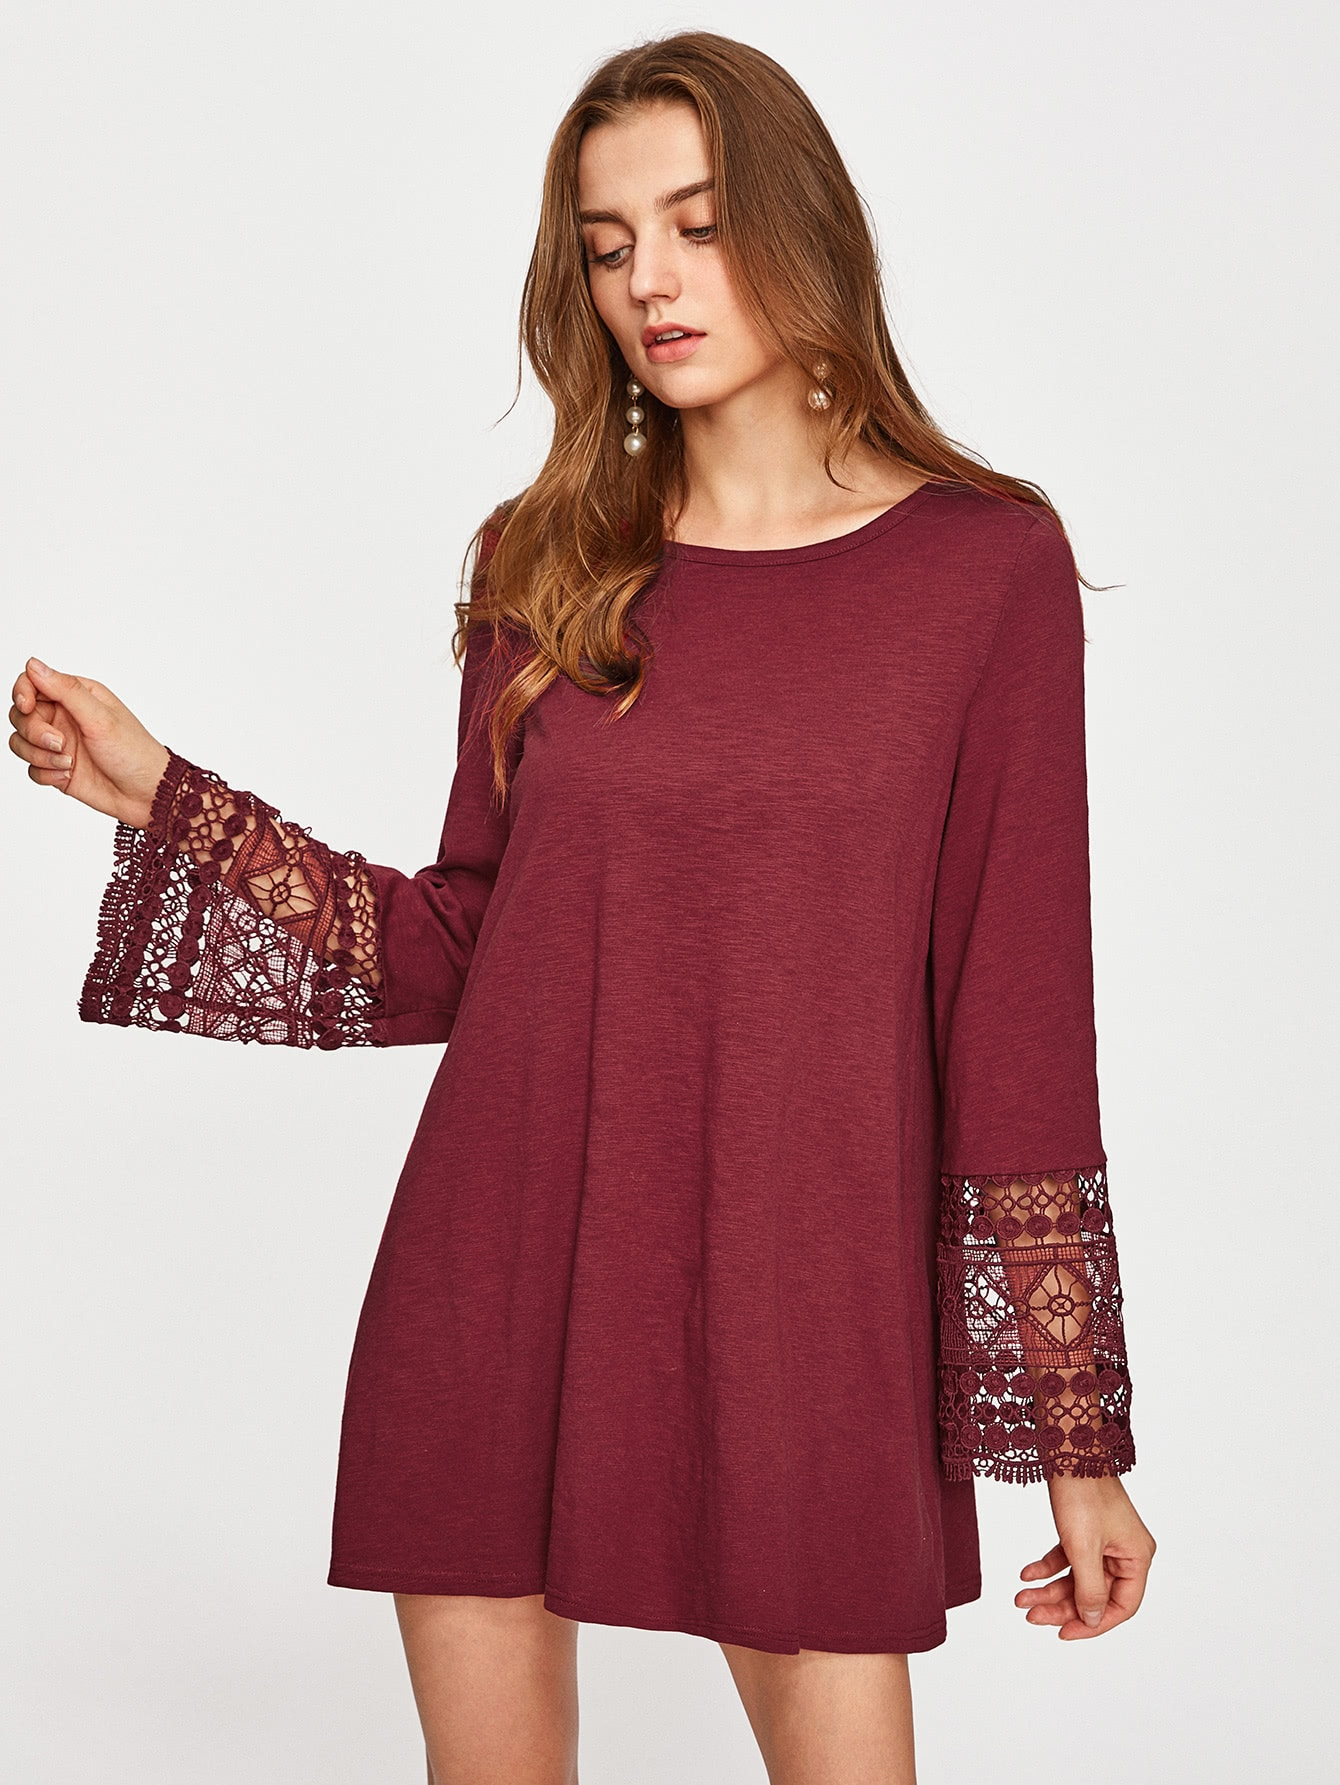 Guipure Lace Fluted Sleeve Swing Dress wl12l 2b530 new and original sick high precision laser light photoelectric switch laser sensor